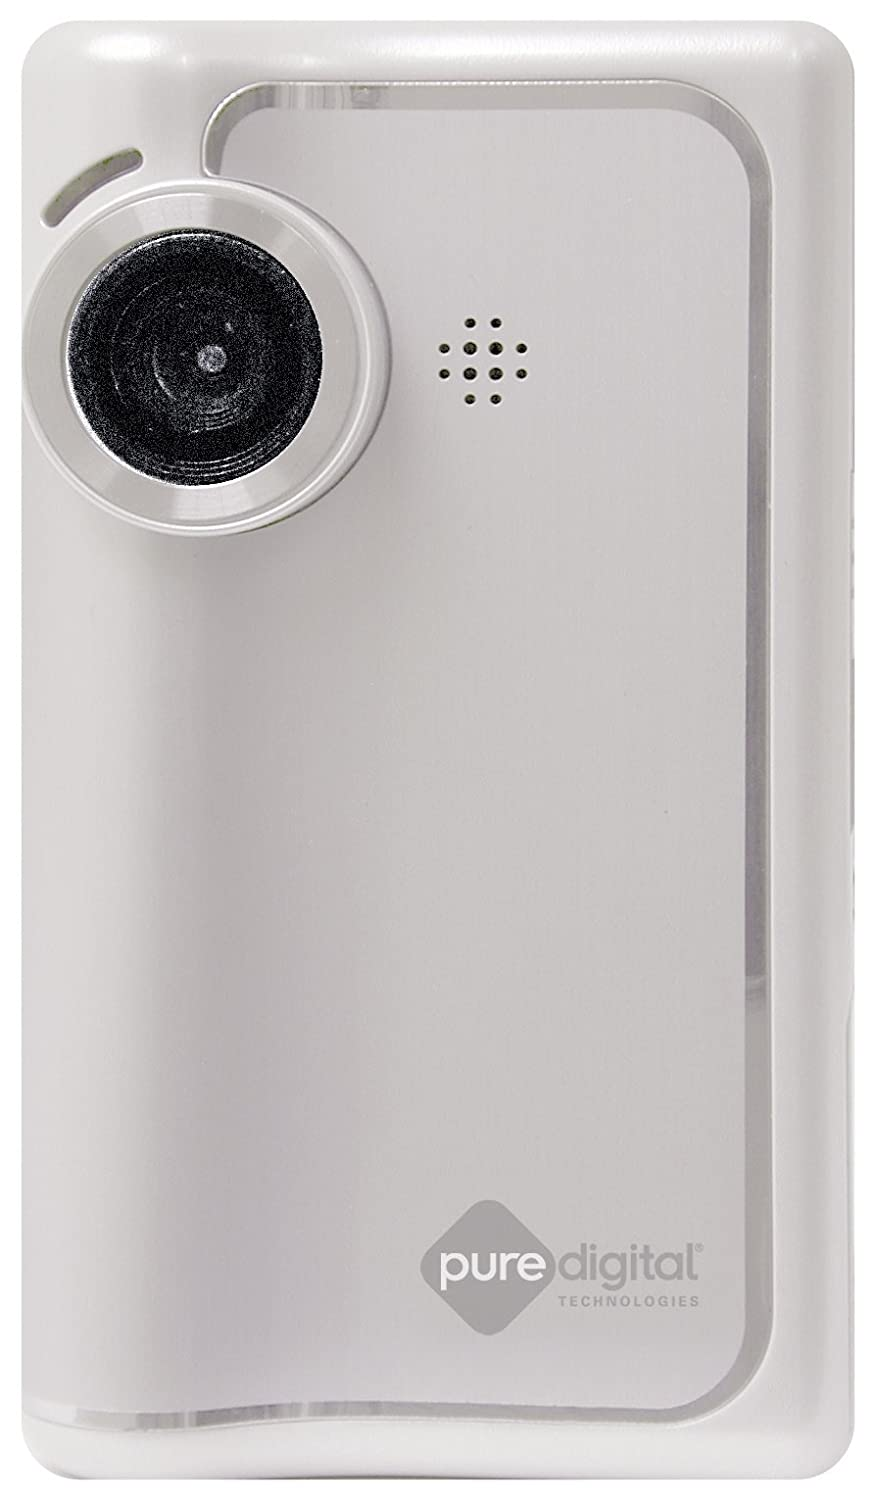 Amazon.com : Pure Digital PSV-351 30 Minute Point-and-Shoot Camcorder  (Discontinued by Manufacturer) : Flip Camera : Camera & Photo